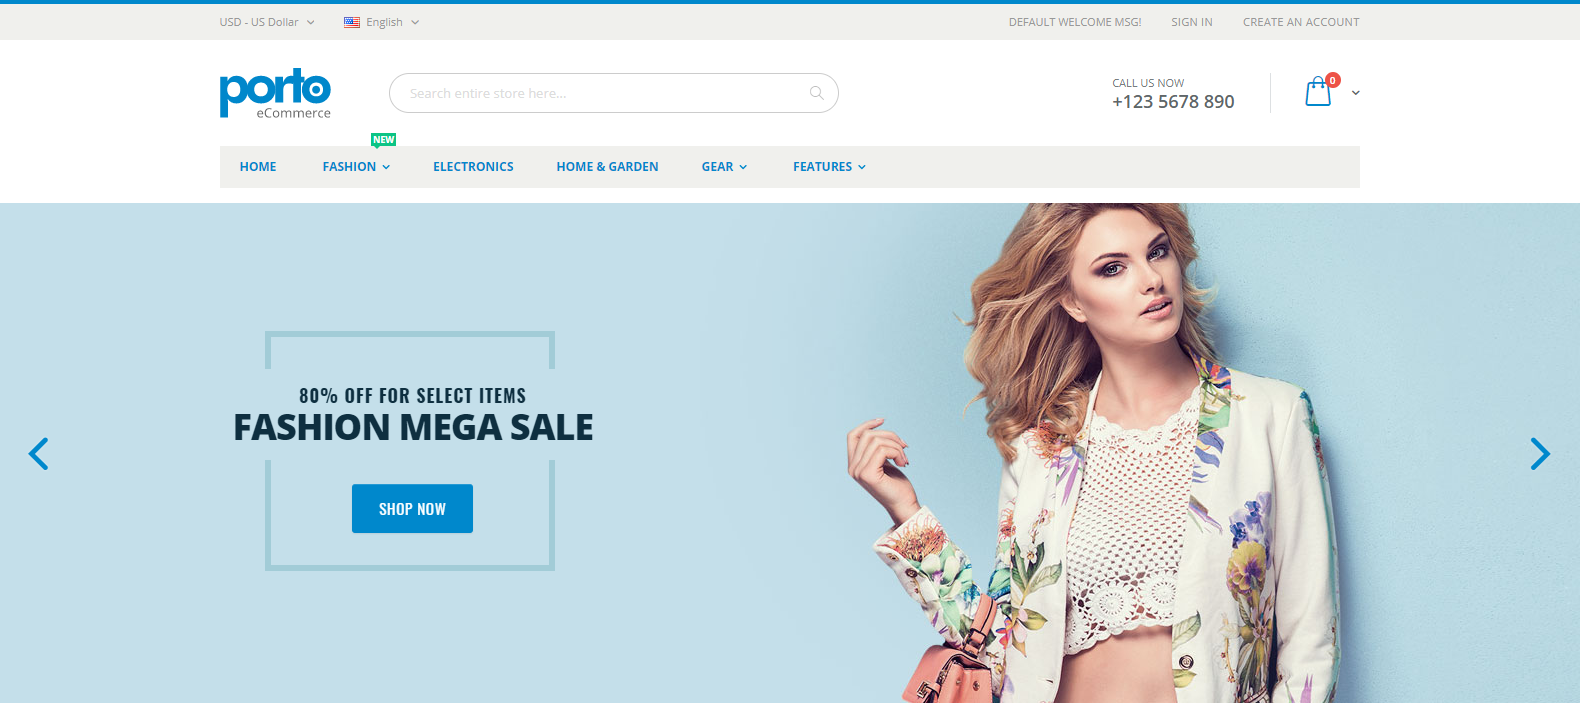 Top 42+ Magento 2 Themes - Best Free & Premium Themes for Magento 2